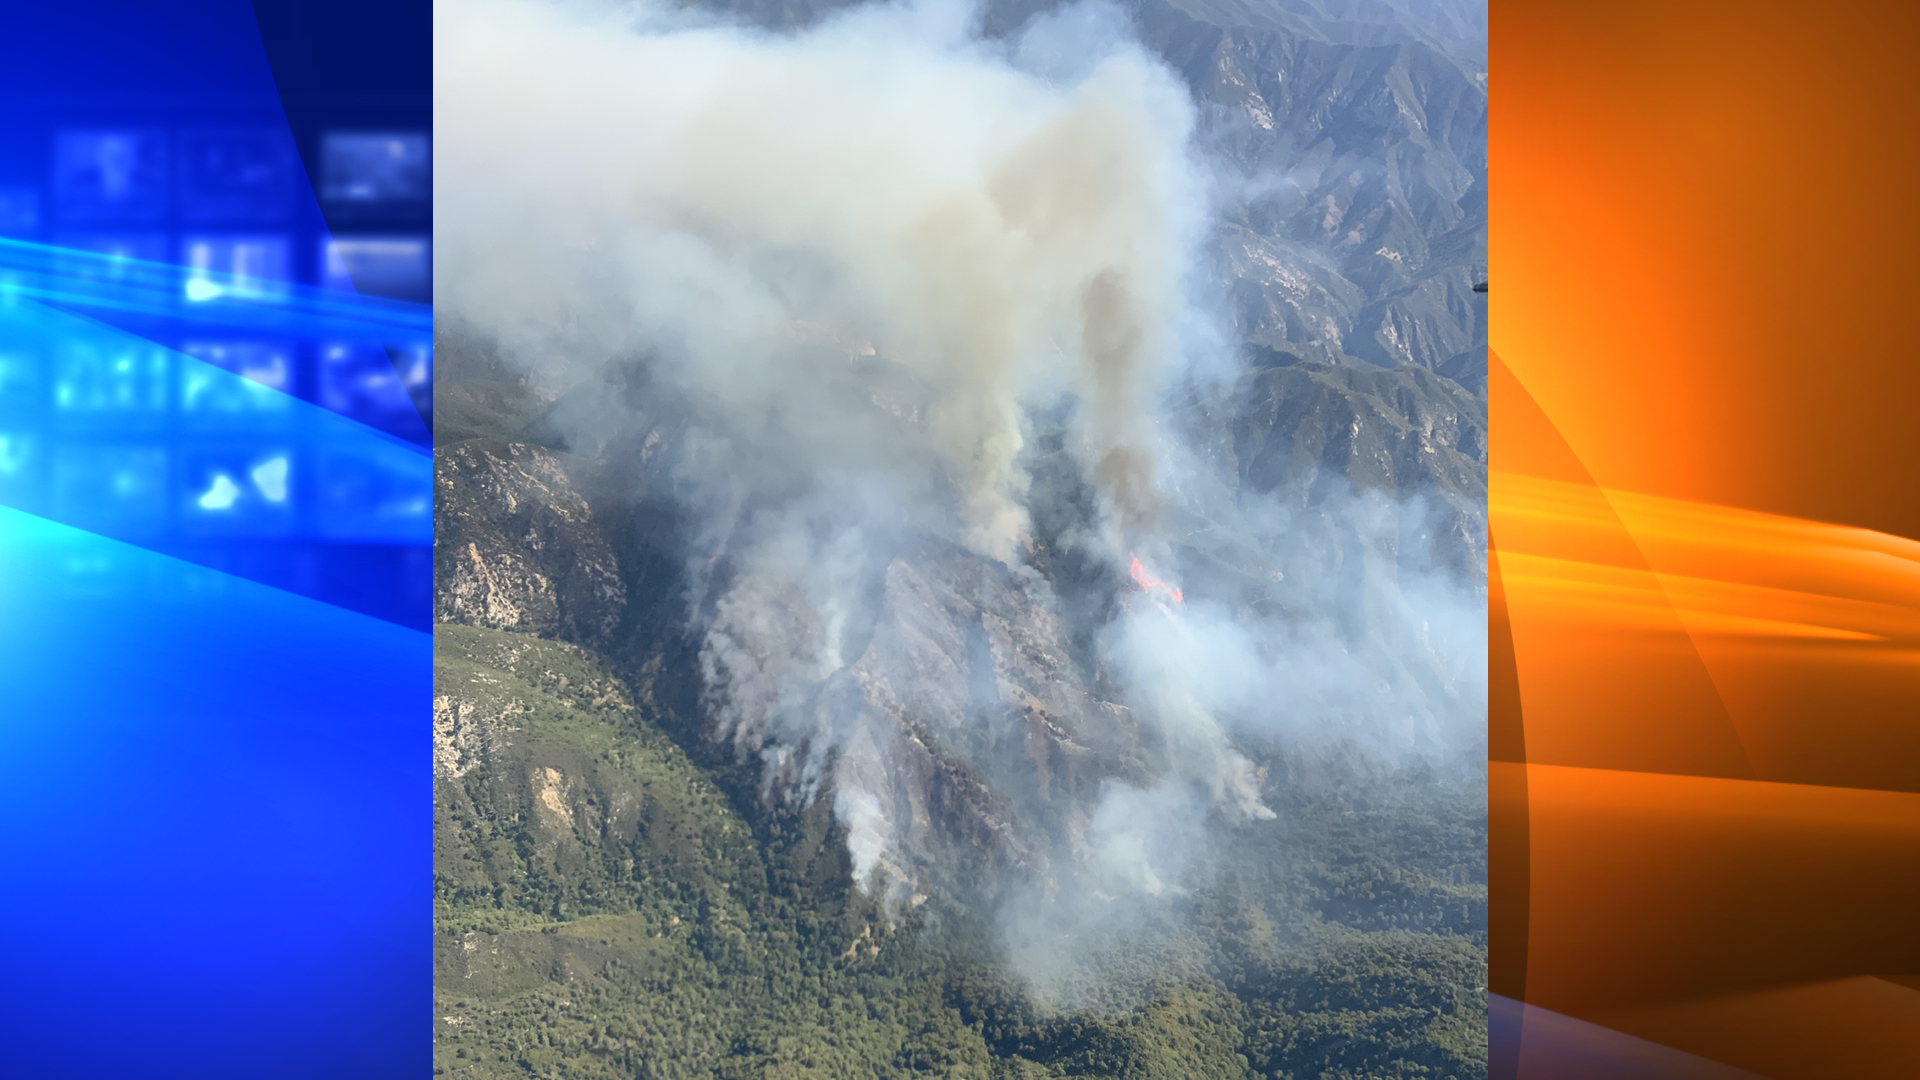 The Willow Fire in Los Padres National Forest is seen in a photo released June 18, 2021, by the U.S. Forest Service.